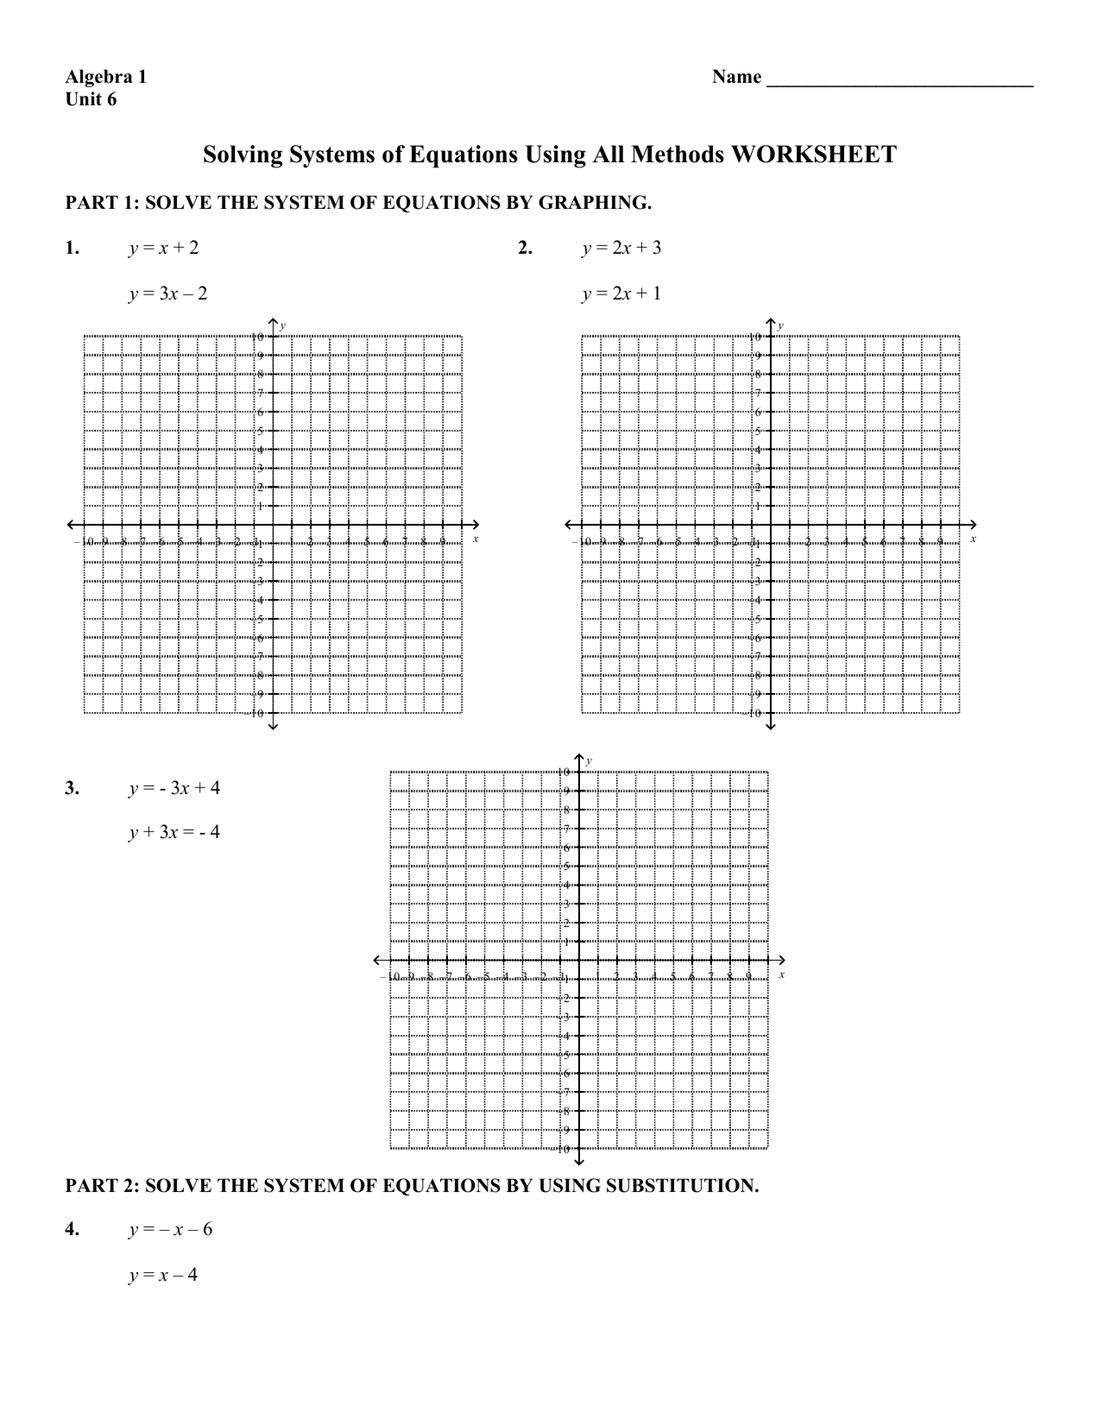 Solving Systems Of Equations By Graphing Worksheet Algebra